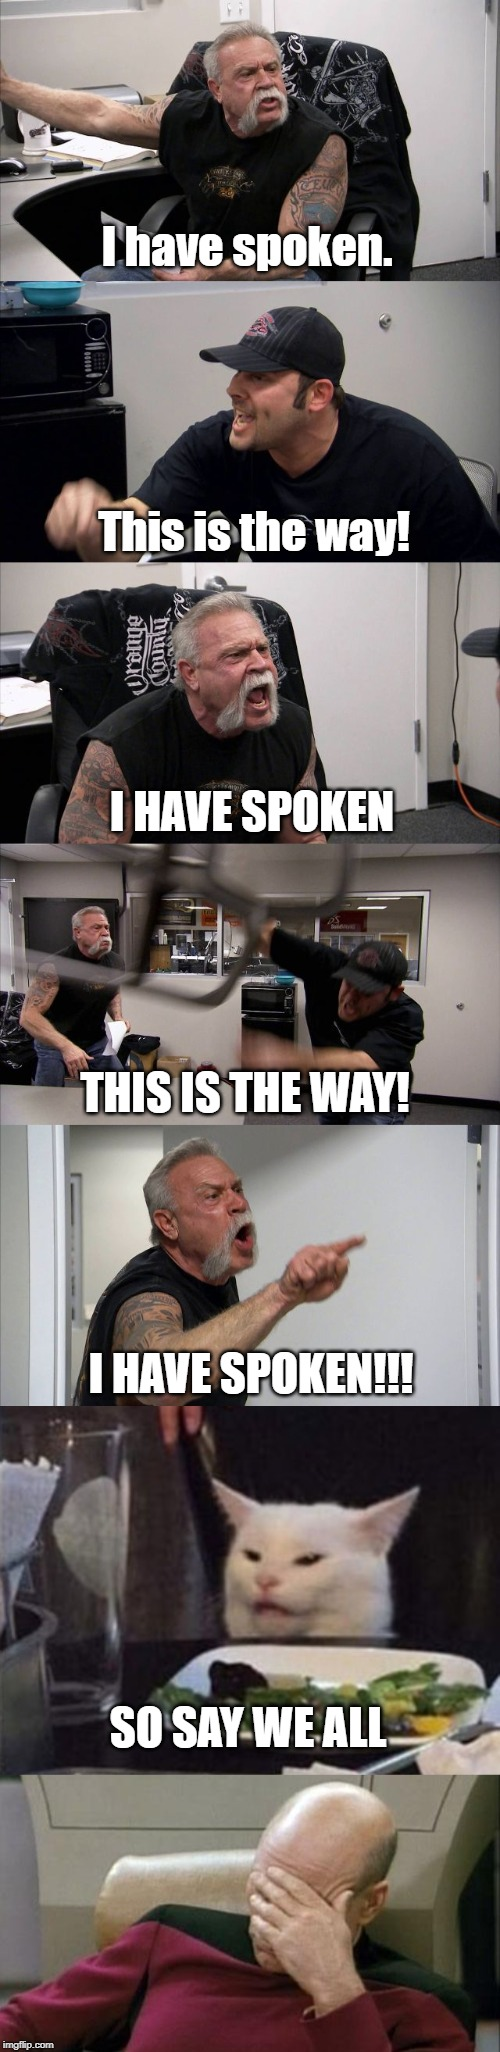 I have spoken. This is the way! I HAVE SPOKEN THIS IS THE WAY! I HAVE SPOKEN!!! SO SAY WE ALL | image tagged in memes,captain picard facepalm,american chopper argument,angry lady cat | made w/ Imgflip meme maker